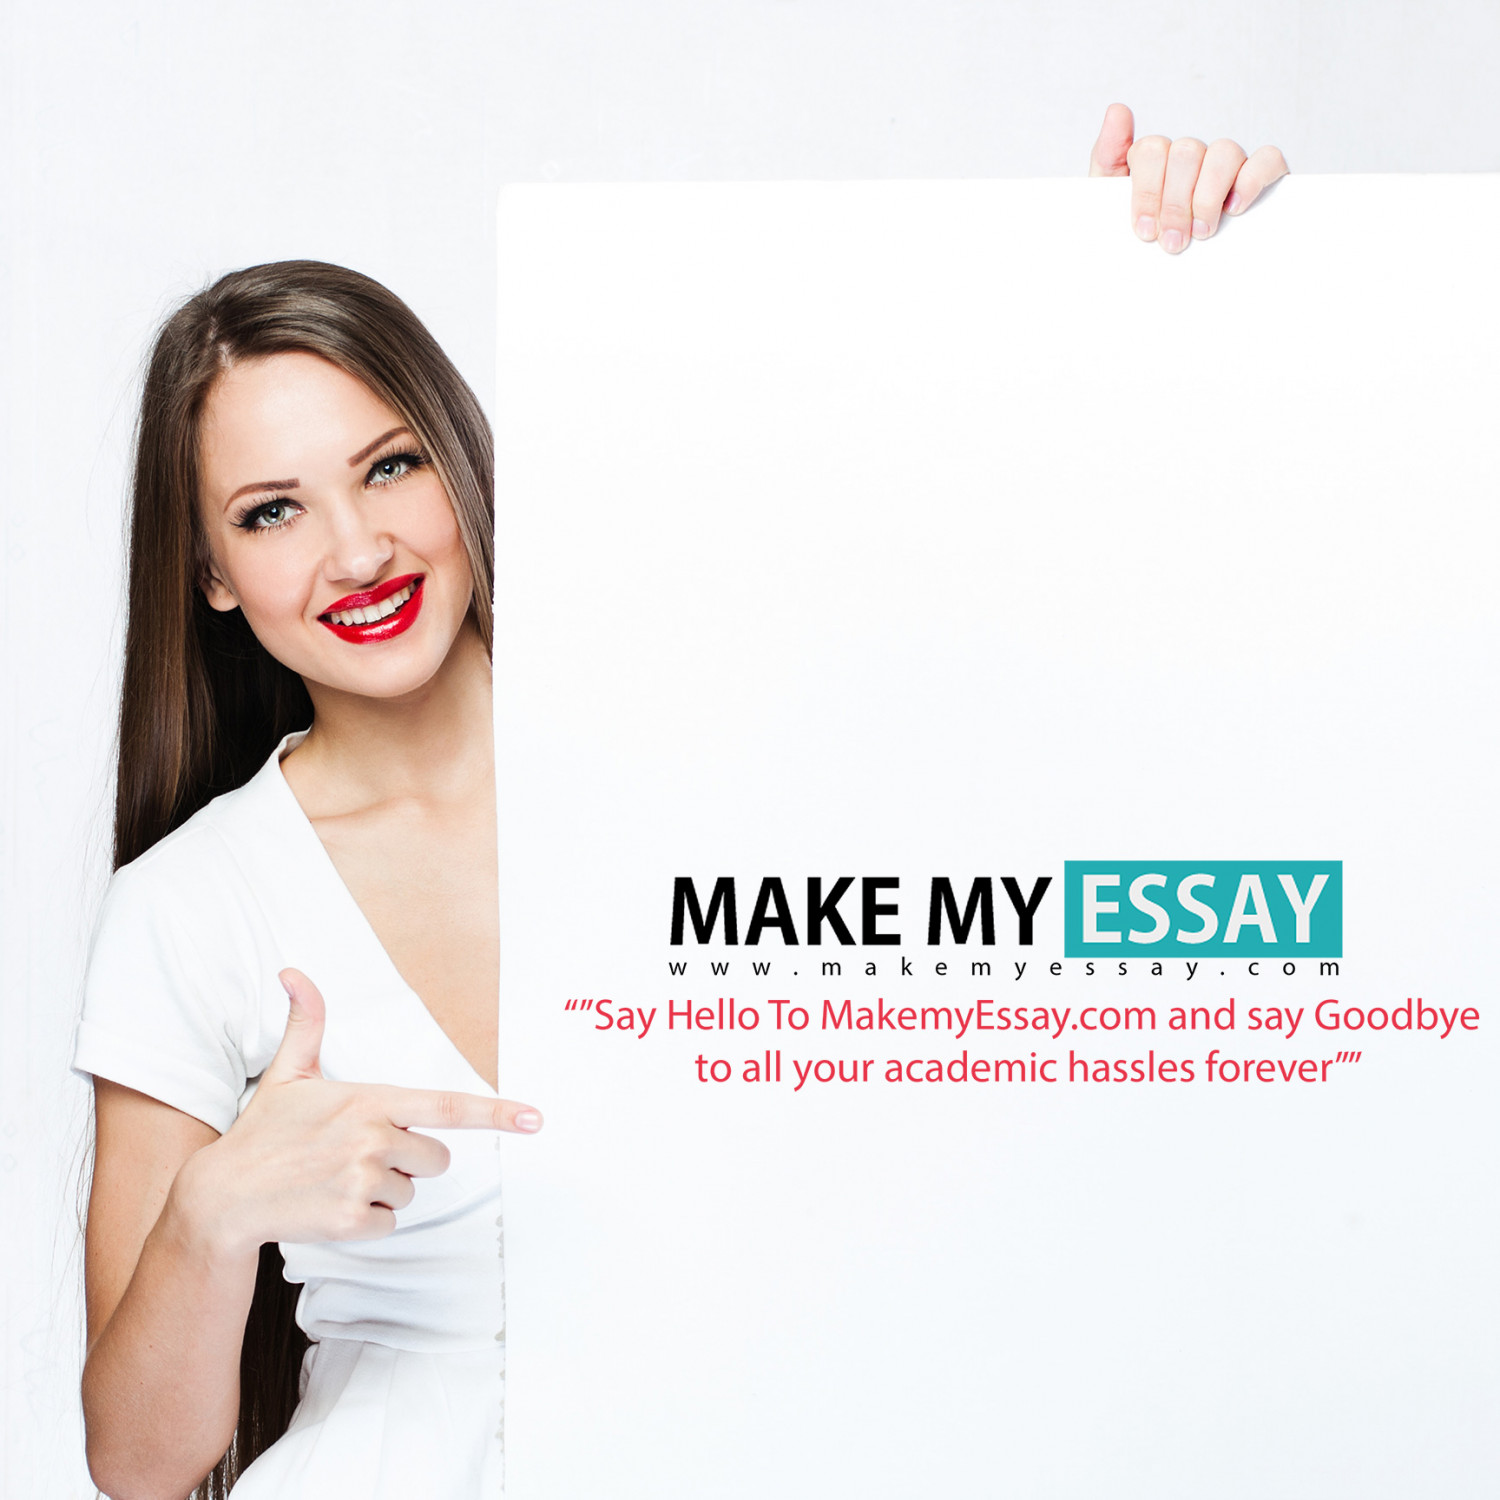 made essay Free essays, research papers, term papers, and other writings on literature, science, history, politics, and more.